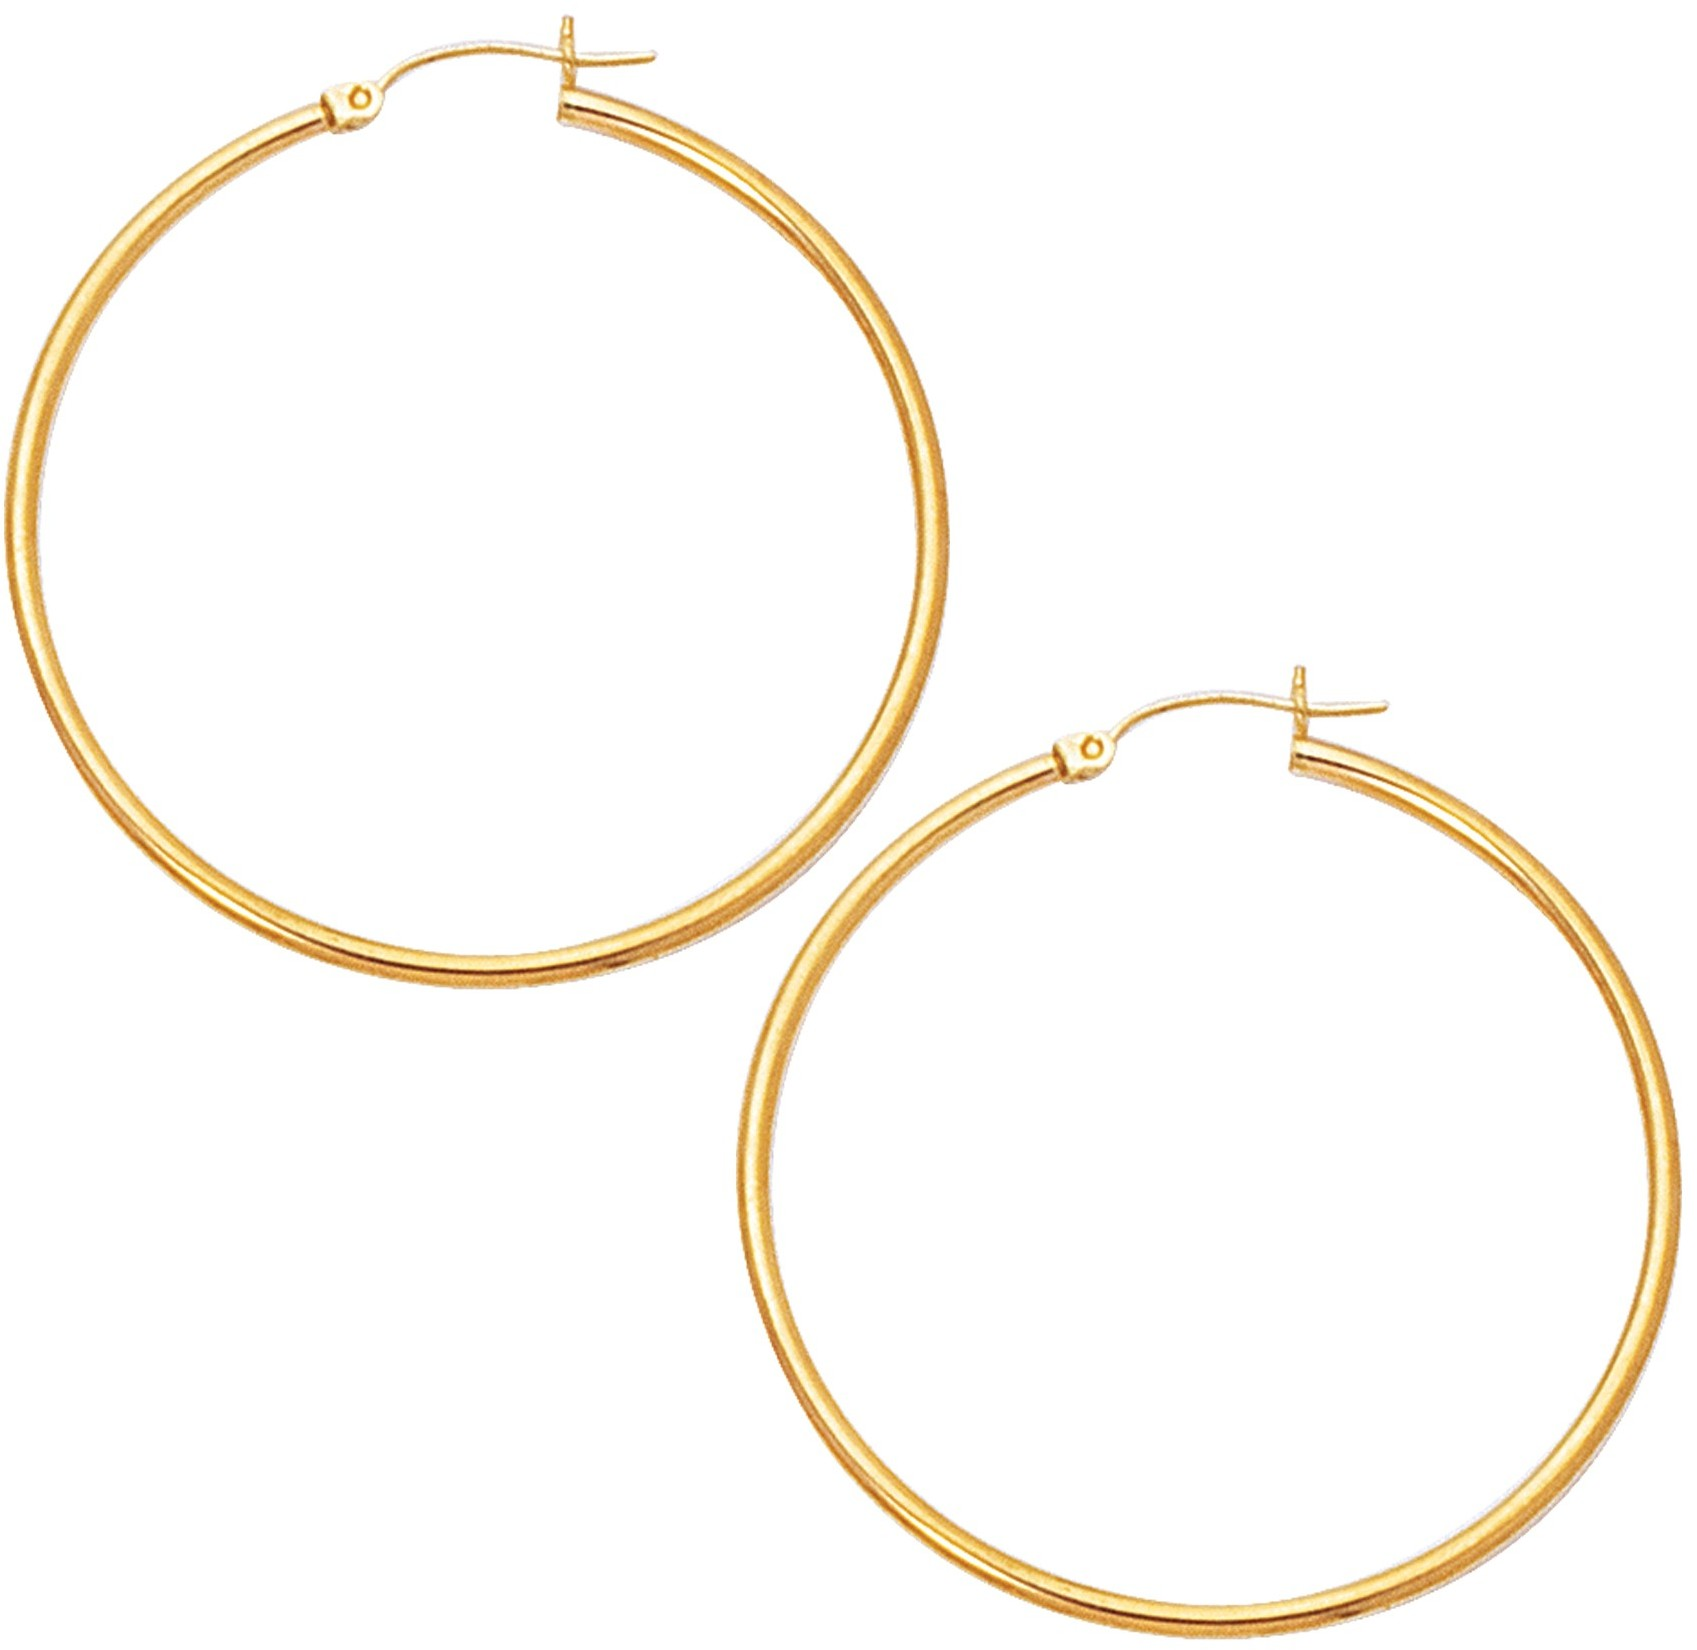 "10K Yellow Gold 2.0X45mm (0.08""x1.77"") Polished Large Open Round Tube Hoop Like Fancy Earrings"